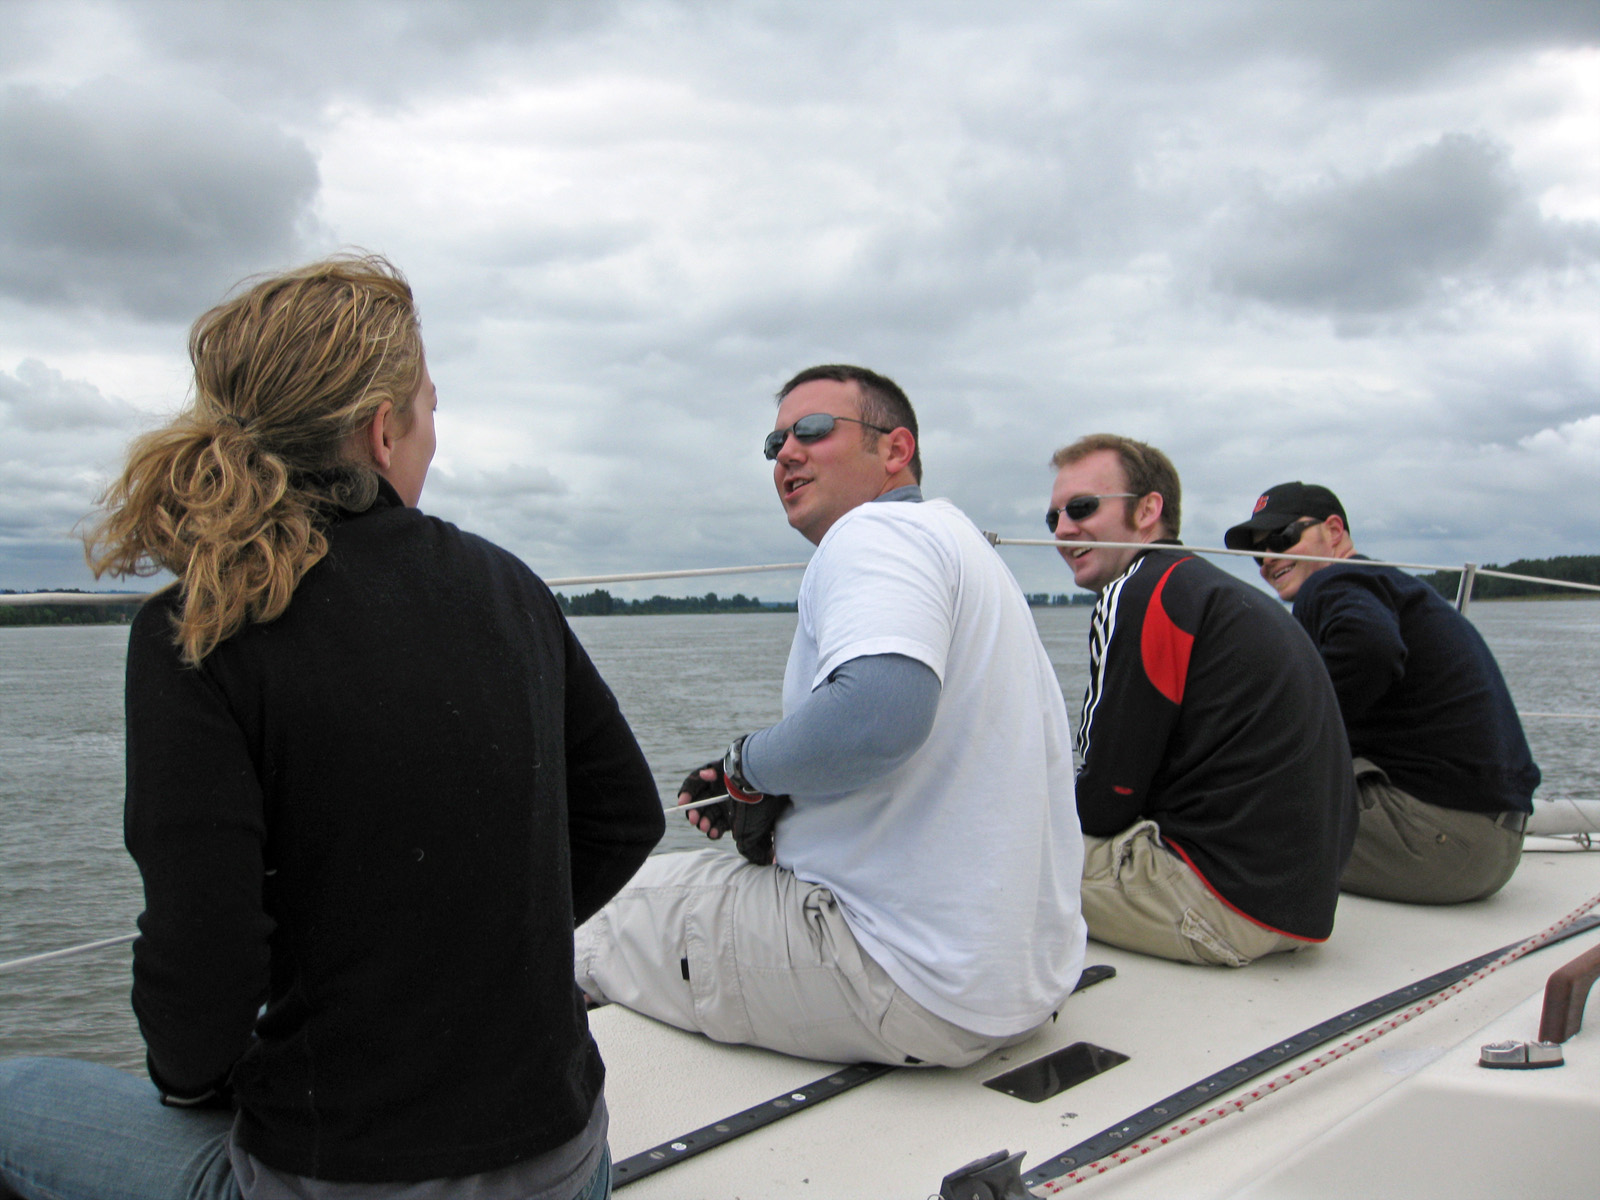 Team Raven had some new crew members who made it look easy.  You'd never know it was their first time sailing!